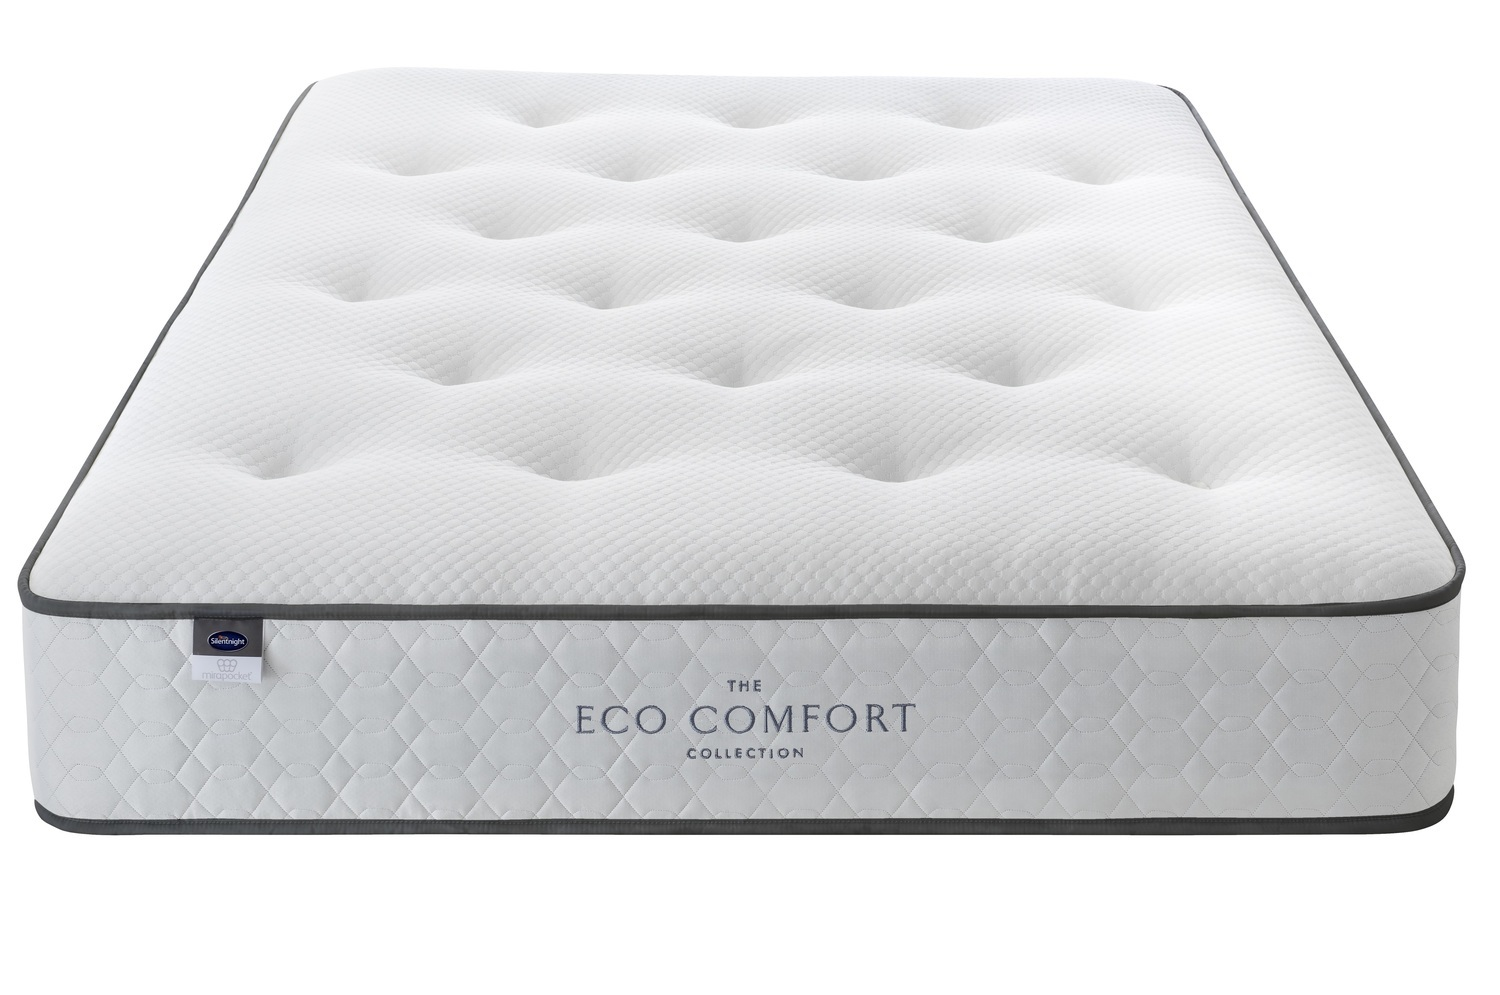 Silentnight Gemini 1200 Mirapocket Mattress